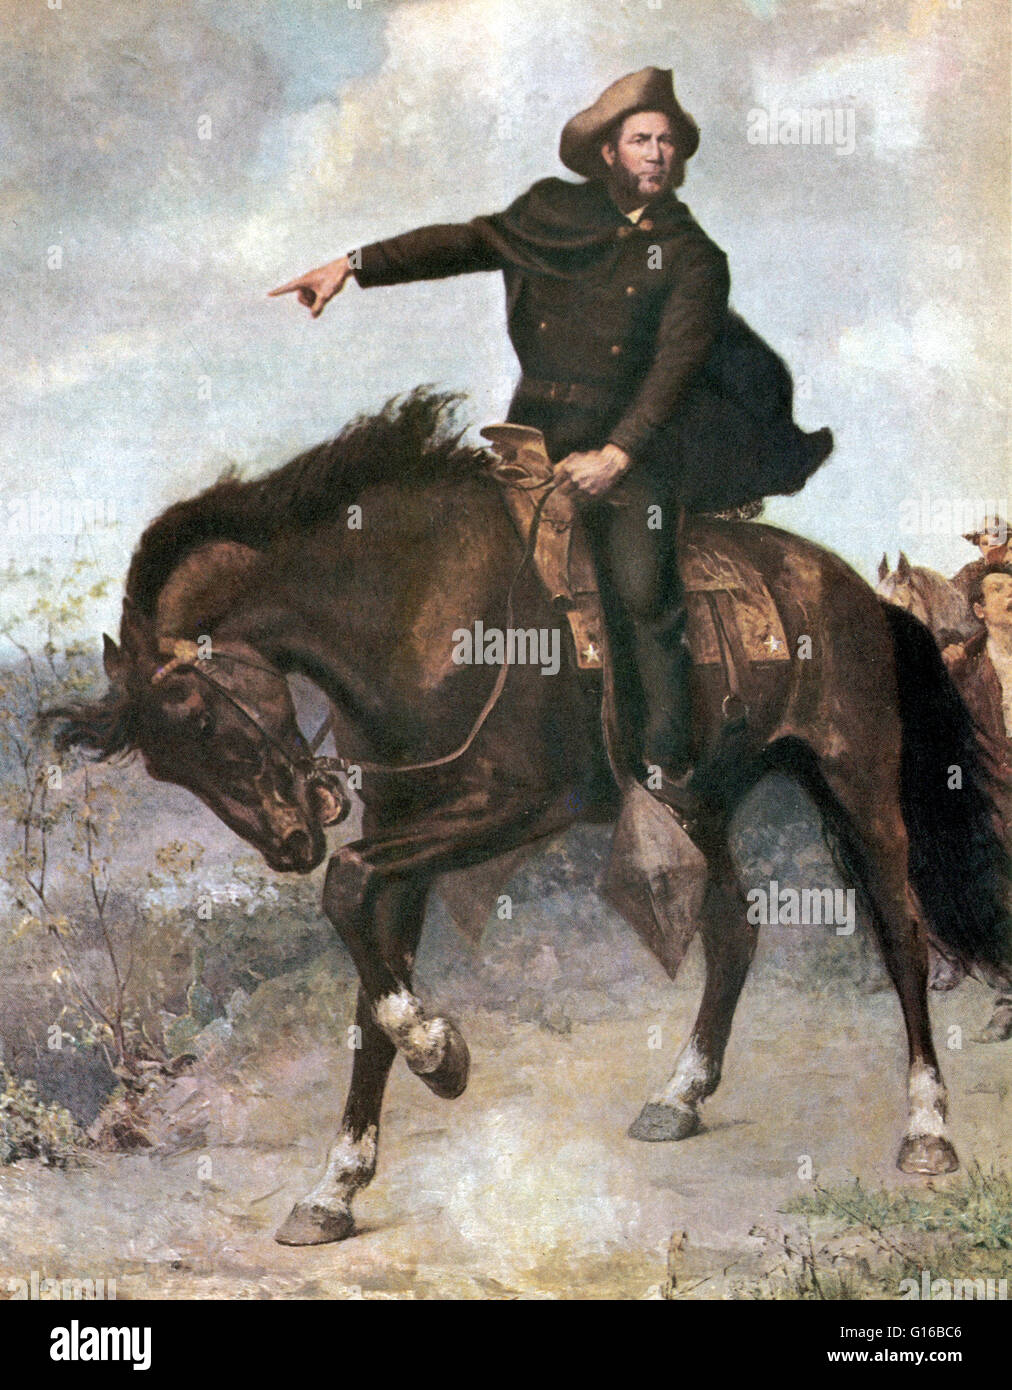 General Sam Houston at the Battle of San Jacinto in 1836, Painting by S. Seymour Thomas. The Battle of San Jacinto, - Stock Image